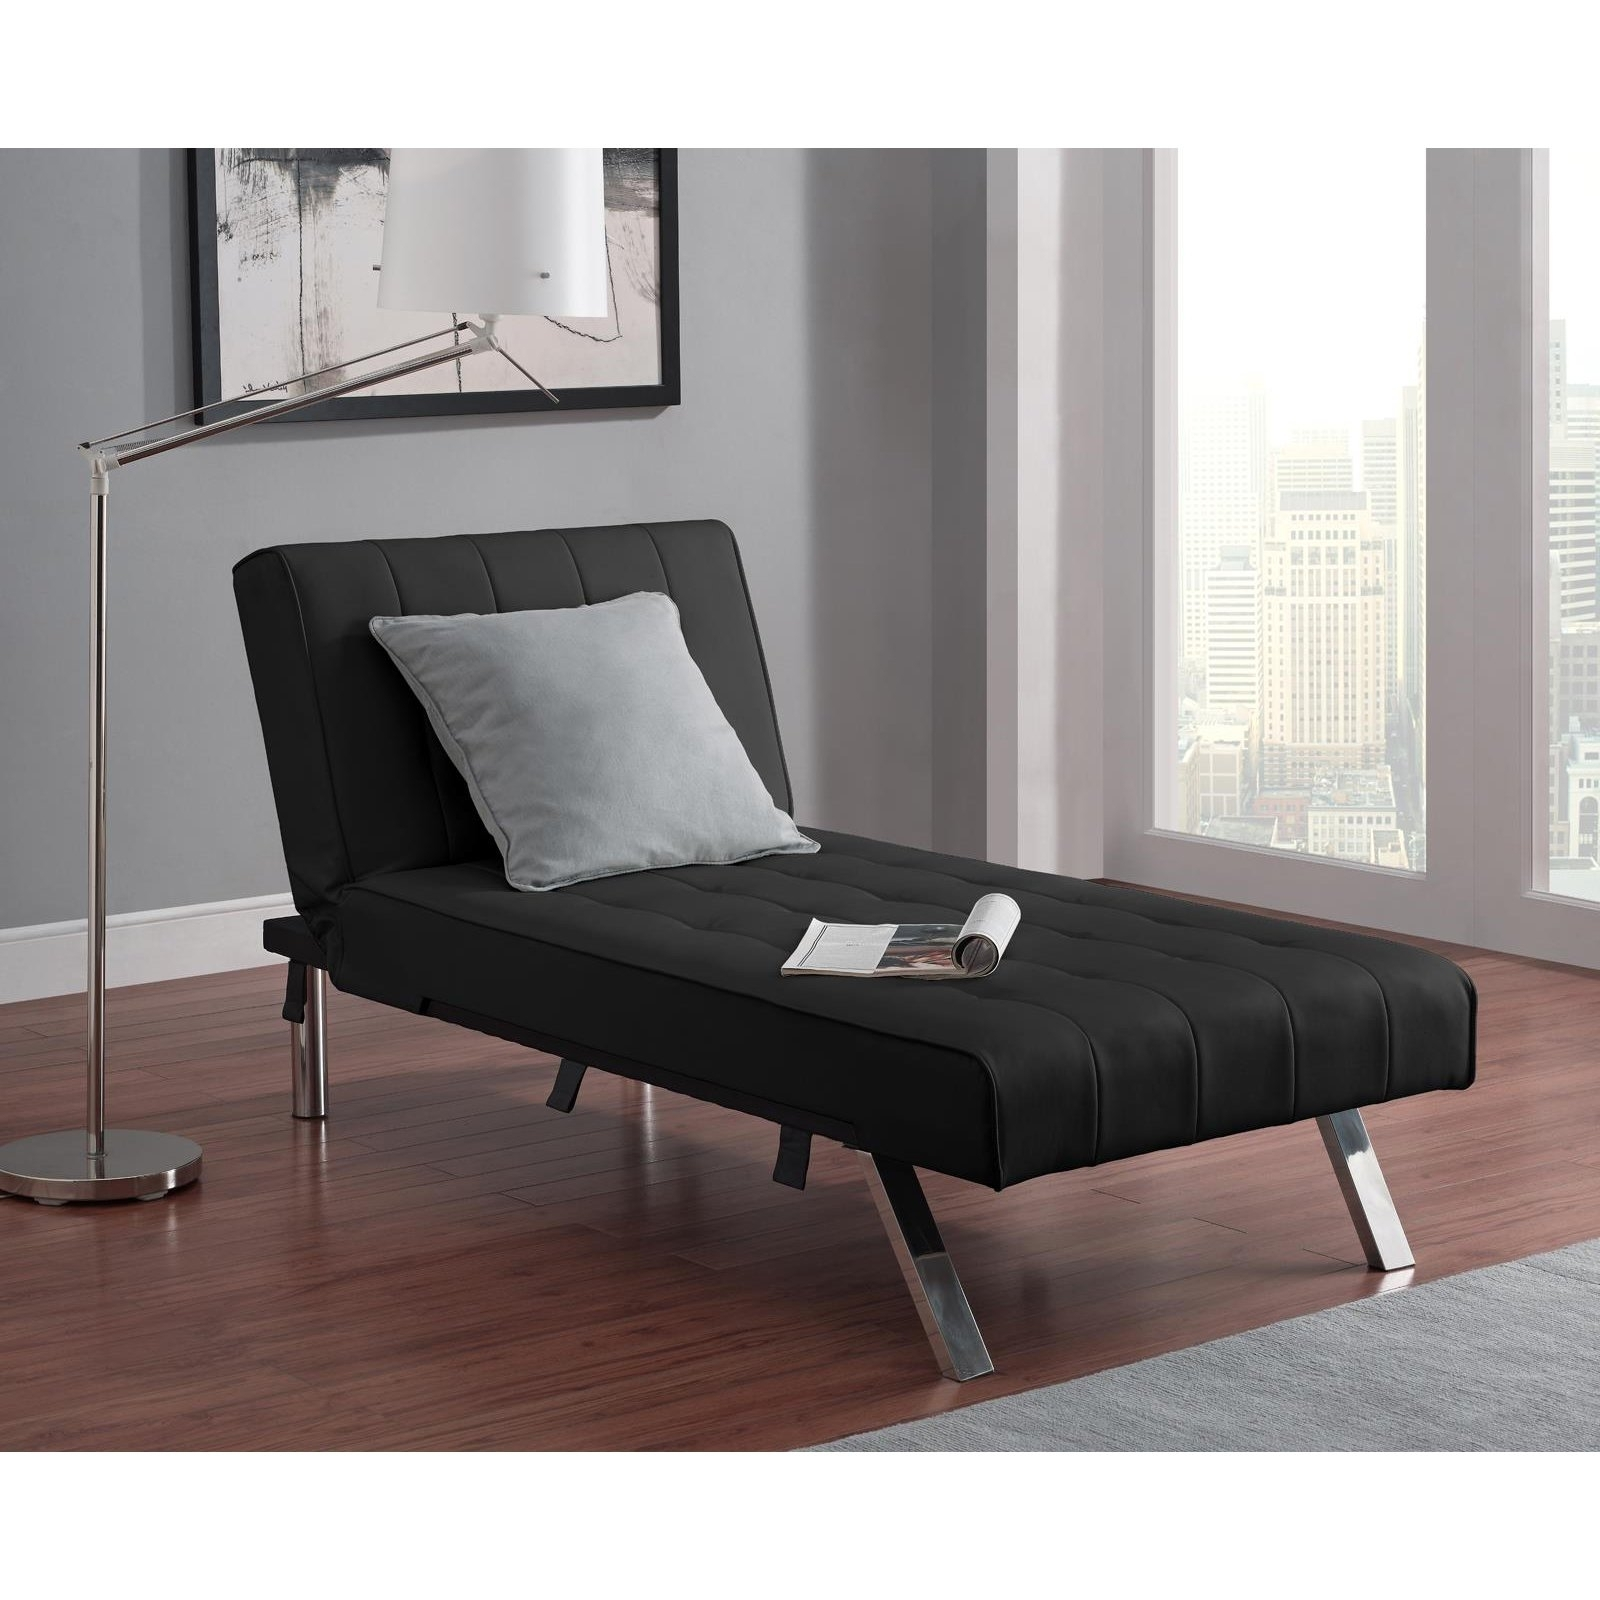 Hayneedle With Preferred Gray Chaise Lounge Chairs (View 11 of 15)